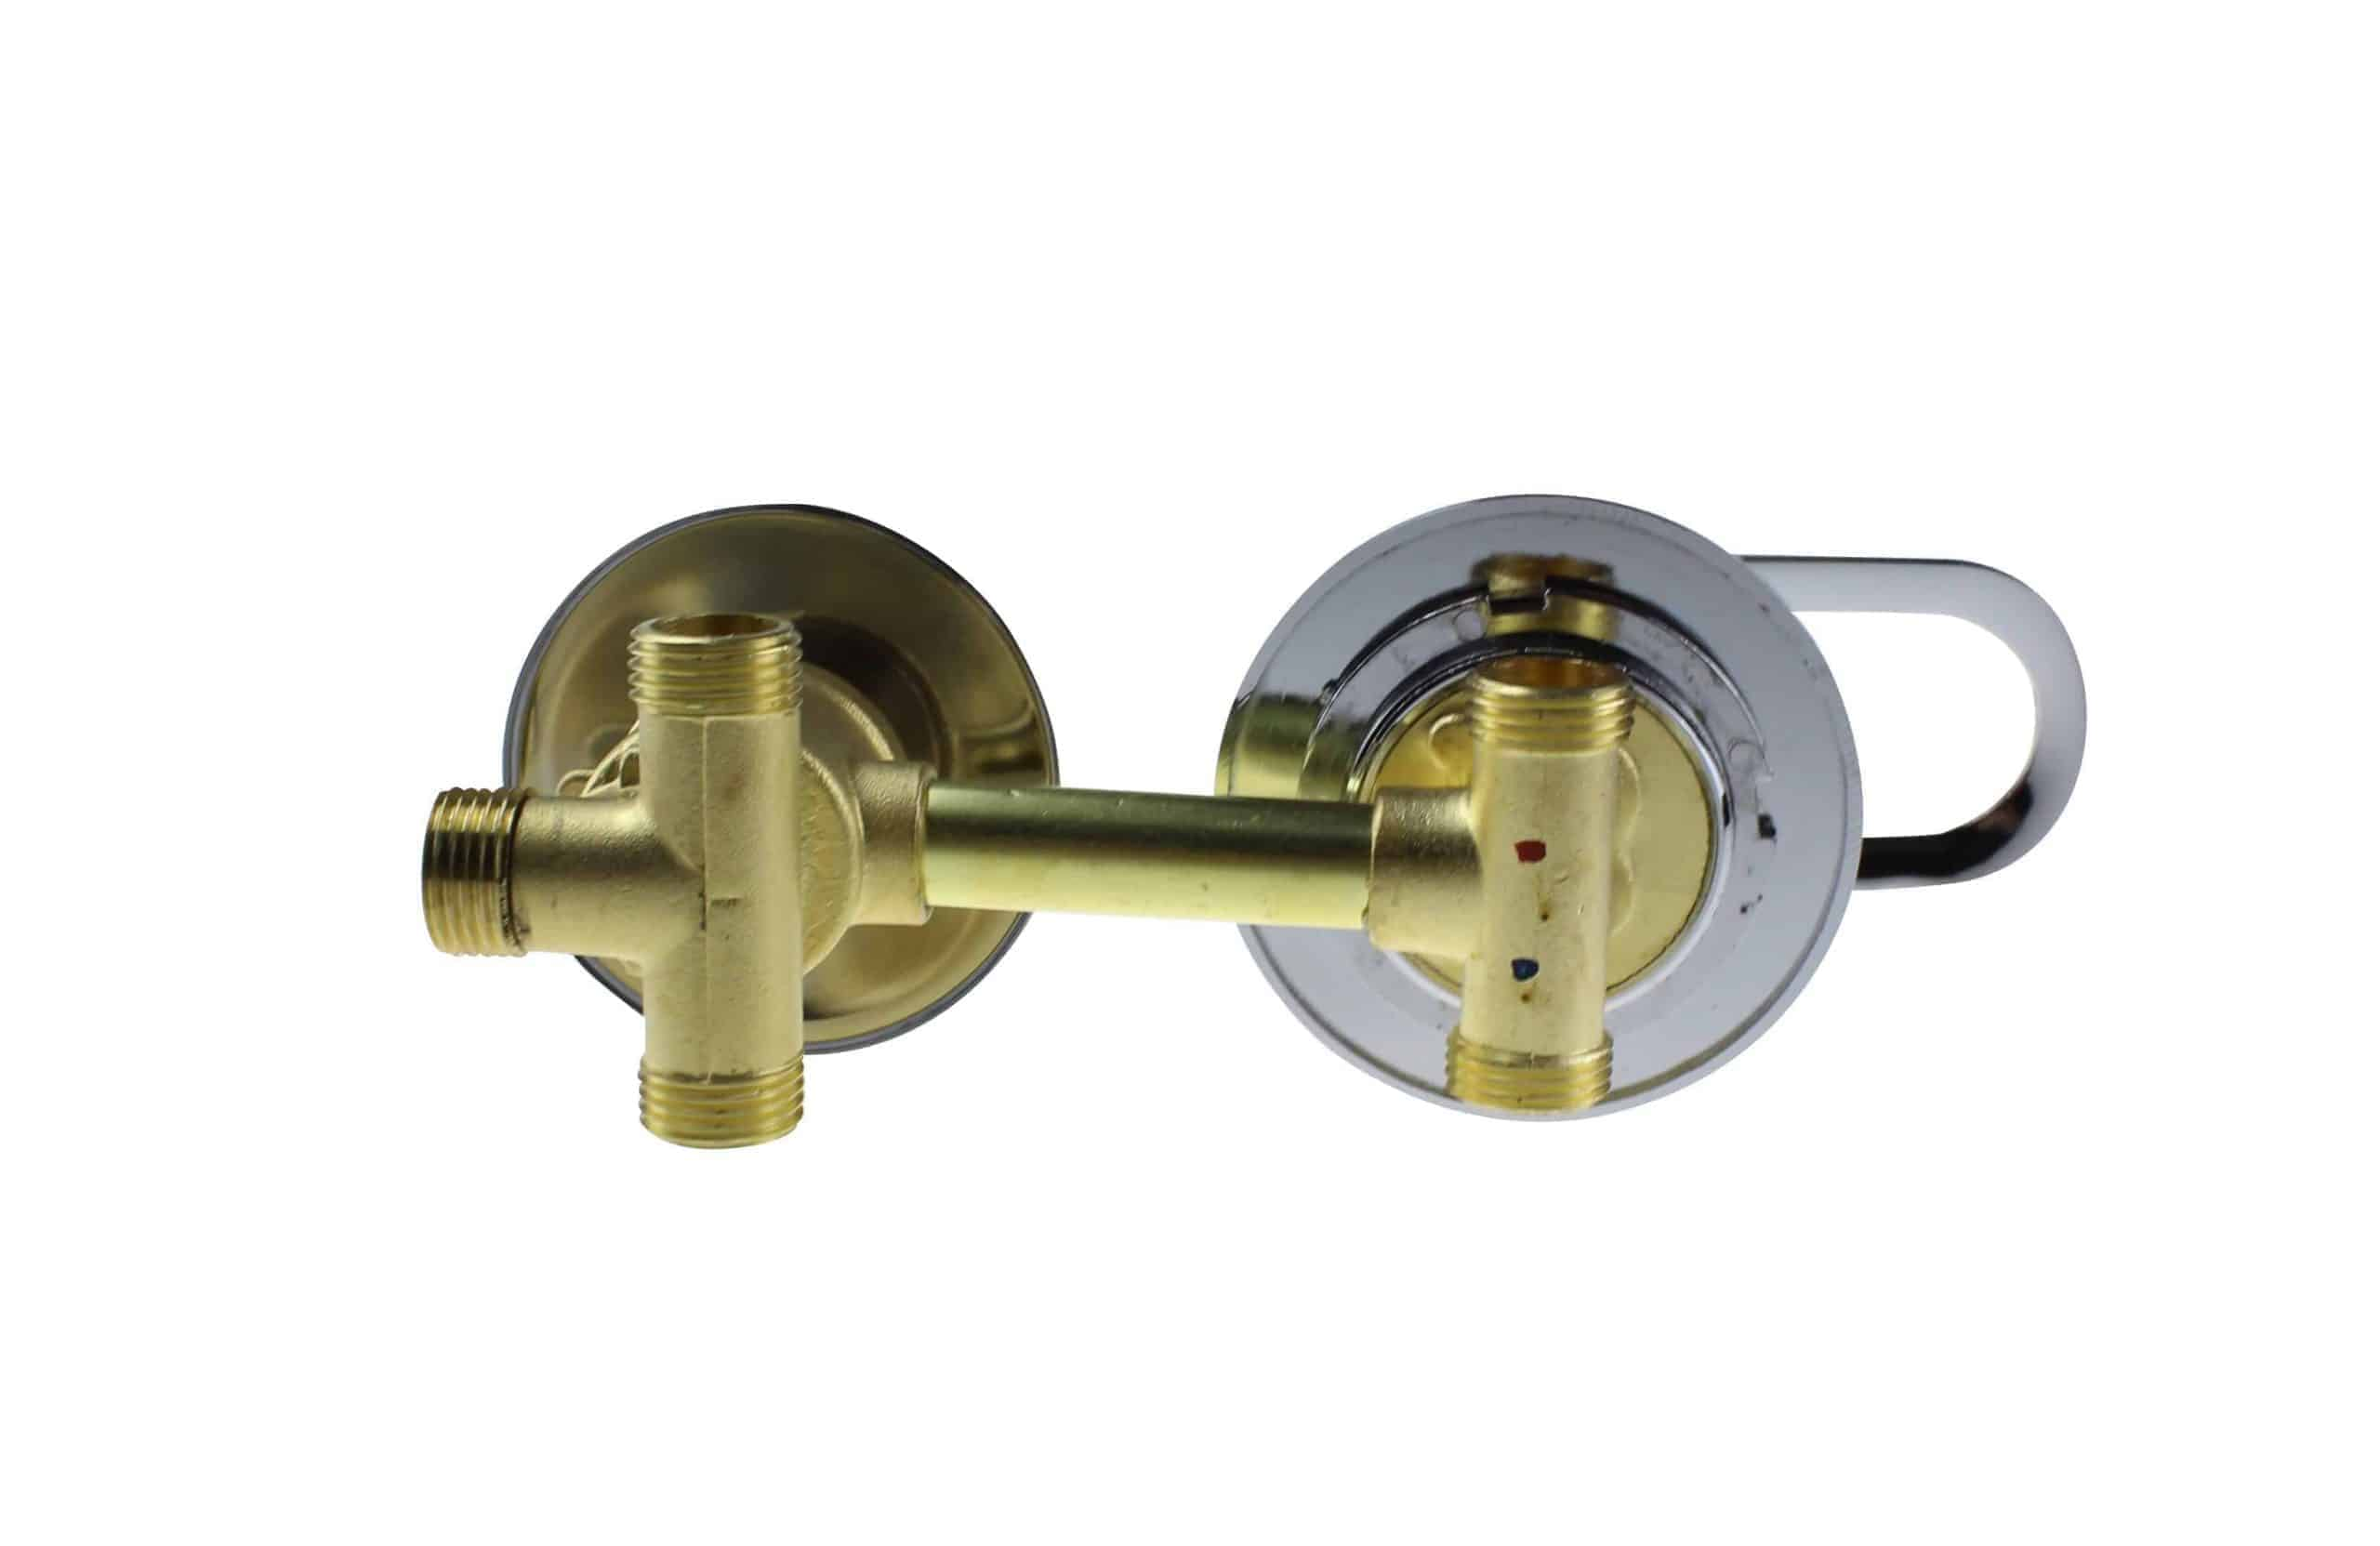 2 Dial Shower Mixer Valve : Threaded 150mm Centres